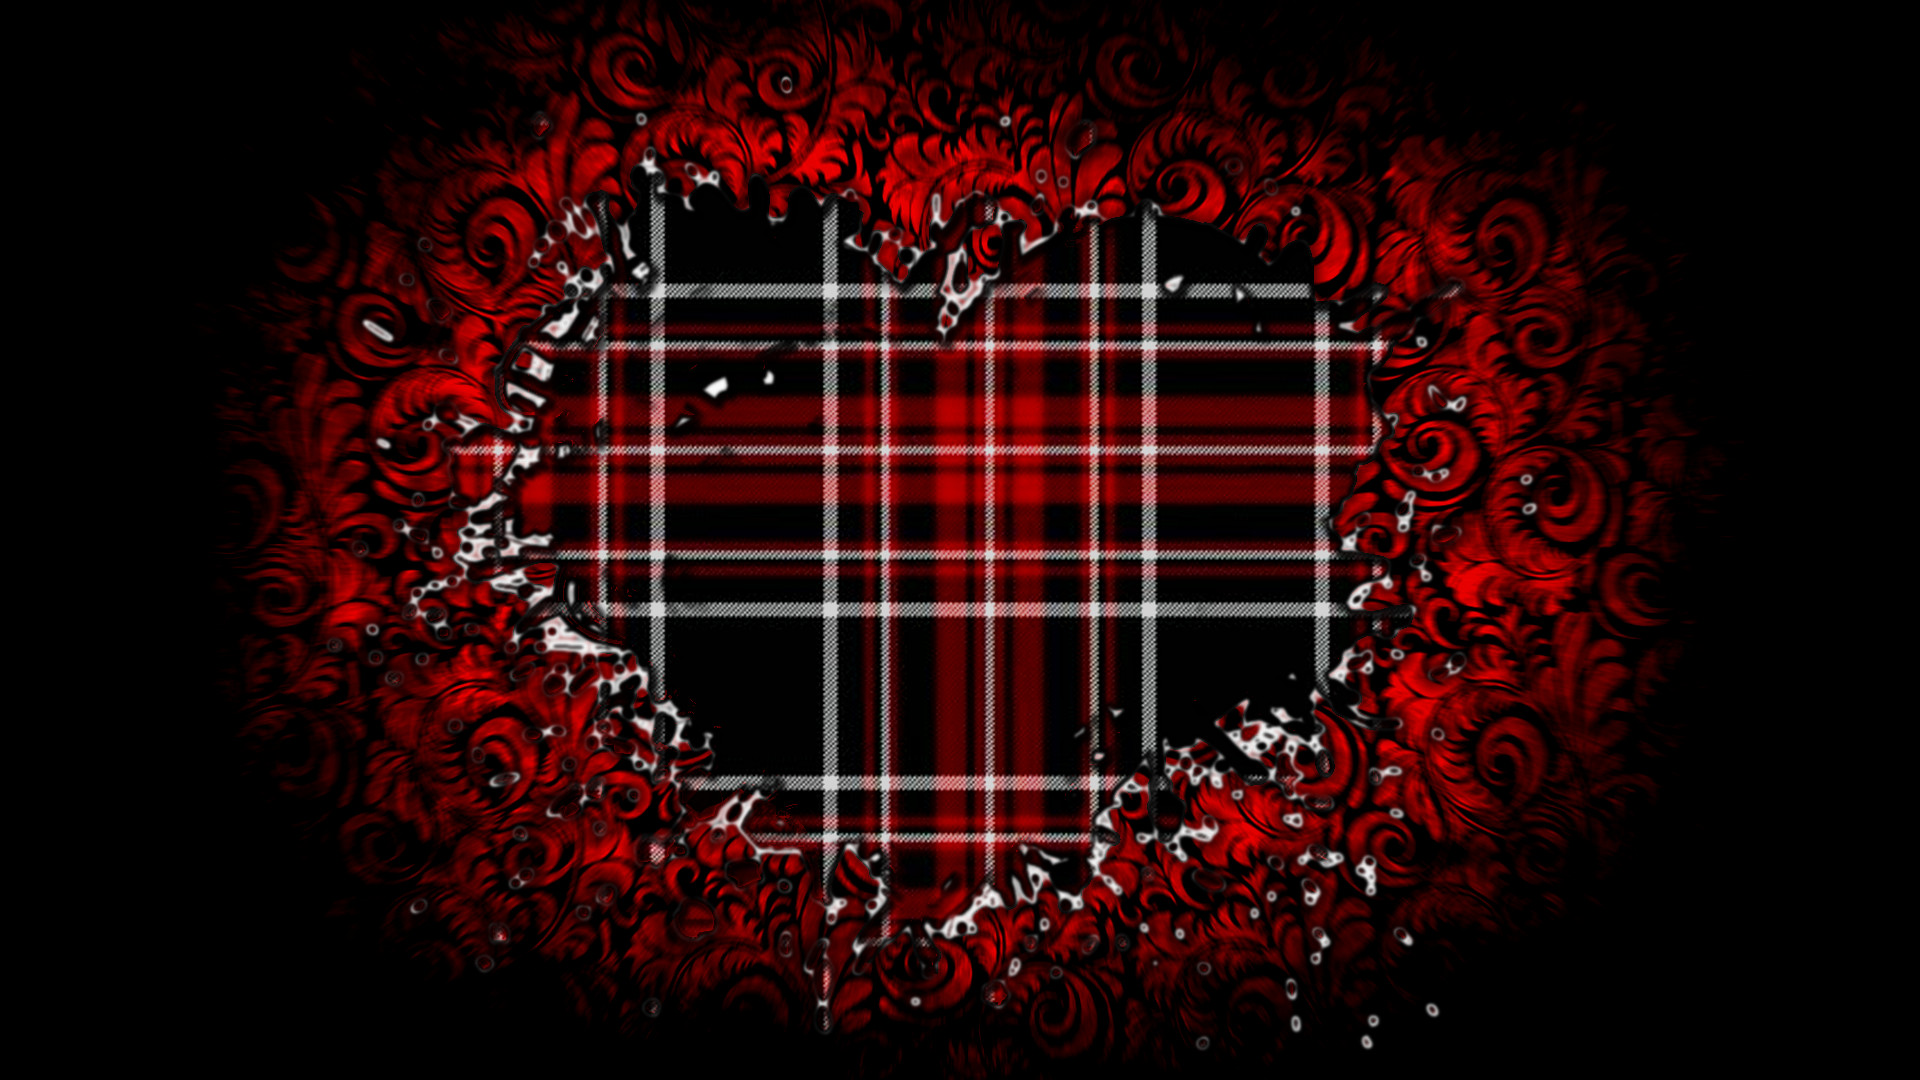 Black And Red Plaid Heart Wallpaper By Roulettesplay On Deviantart